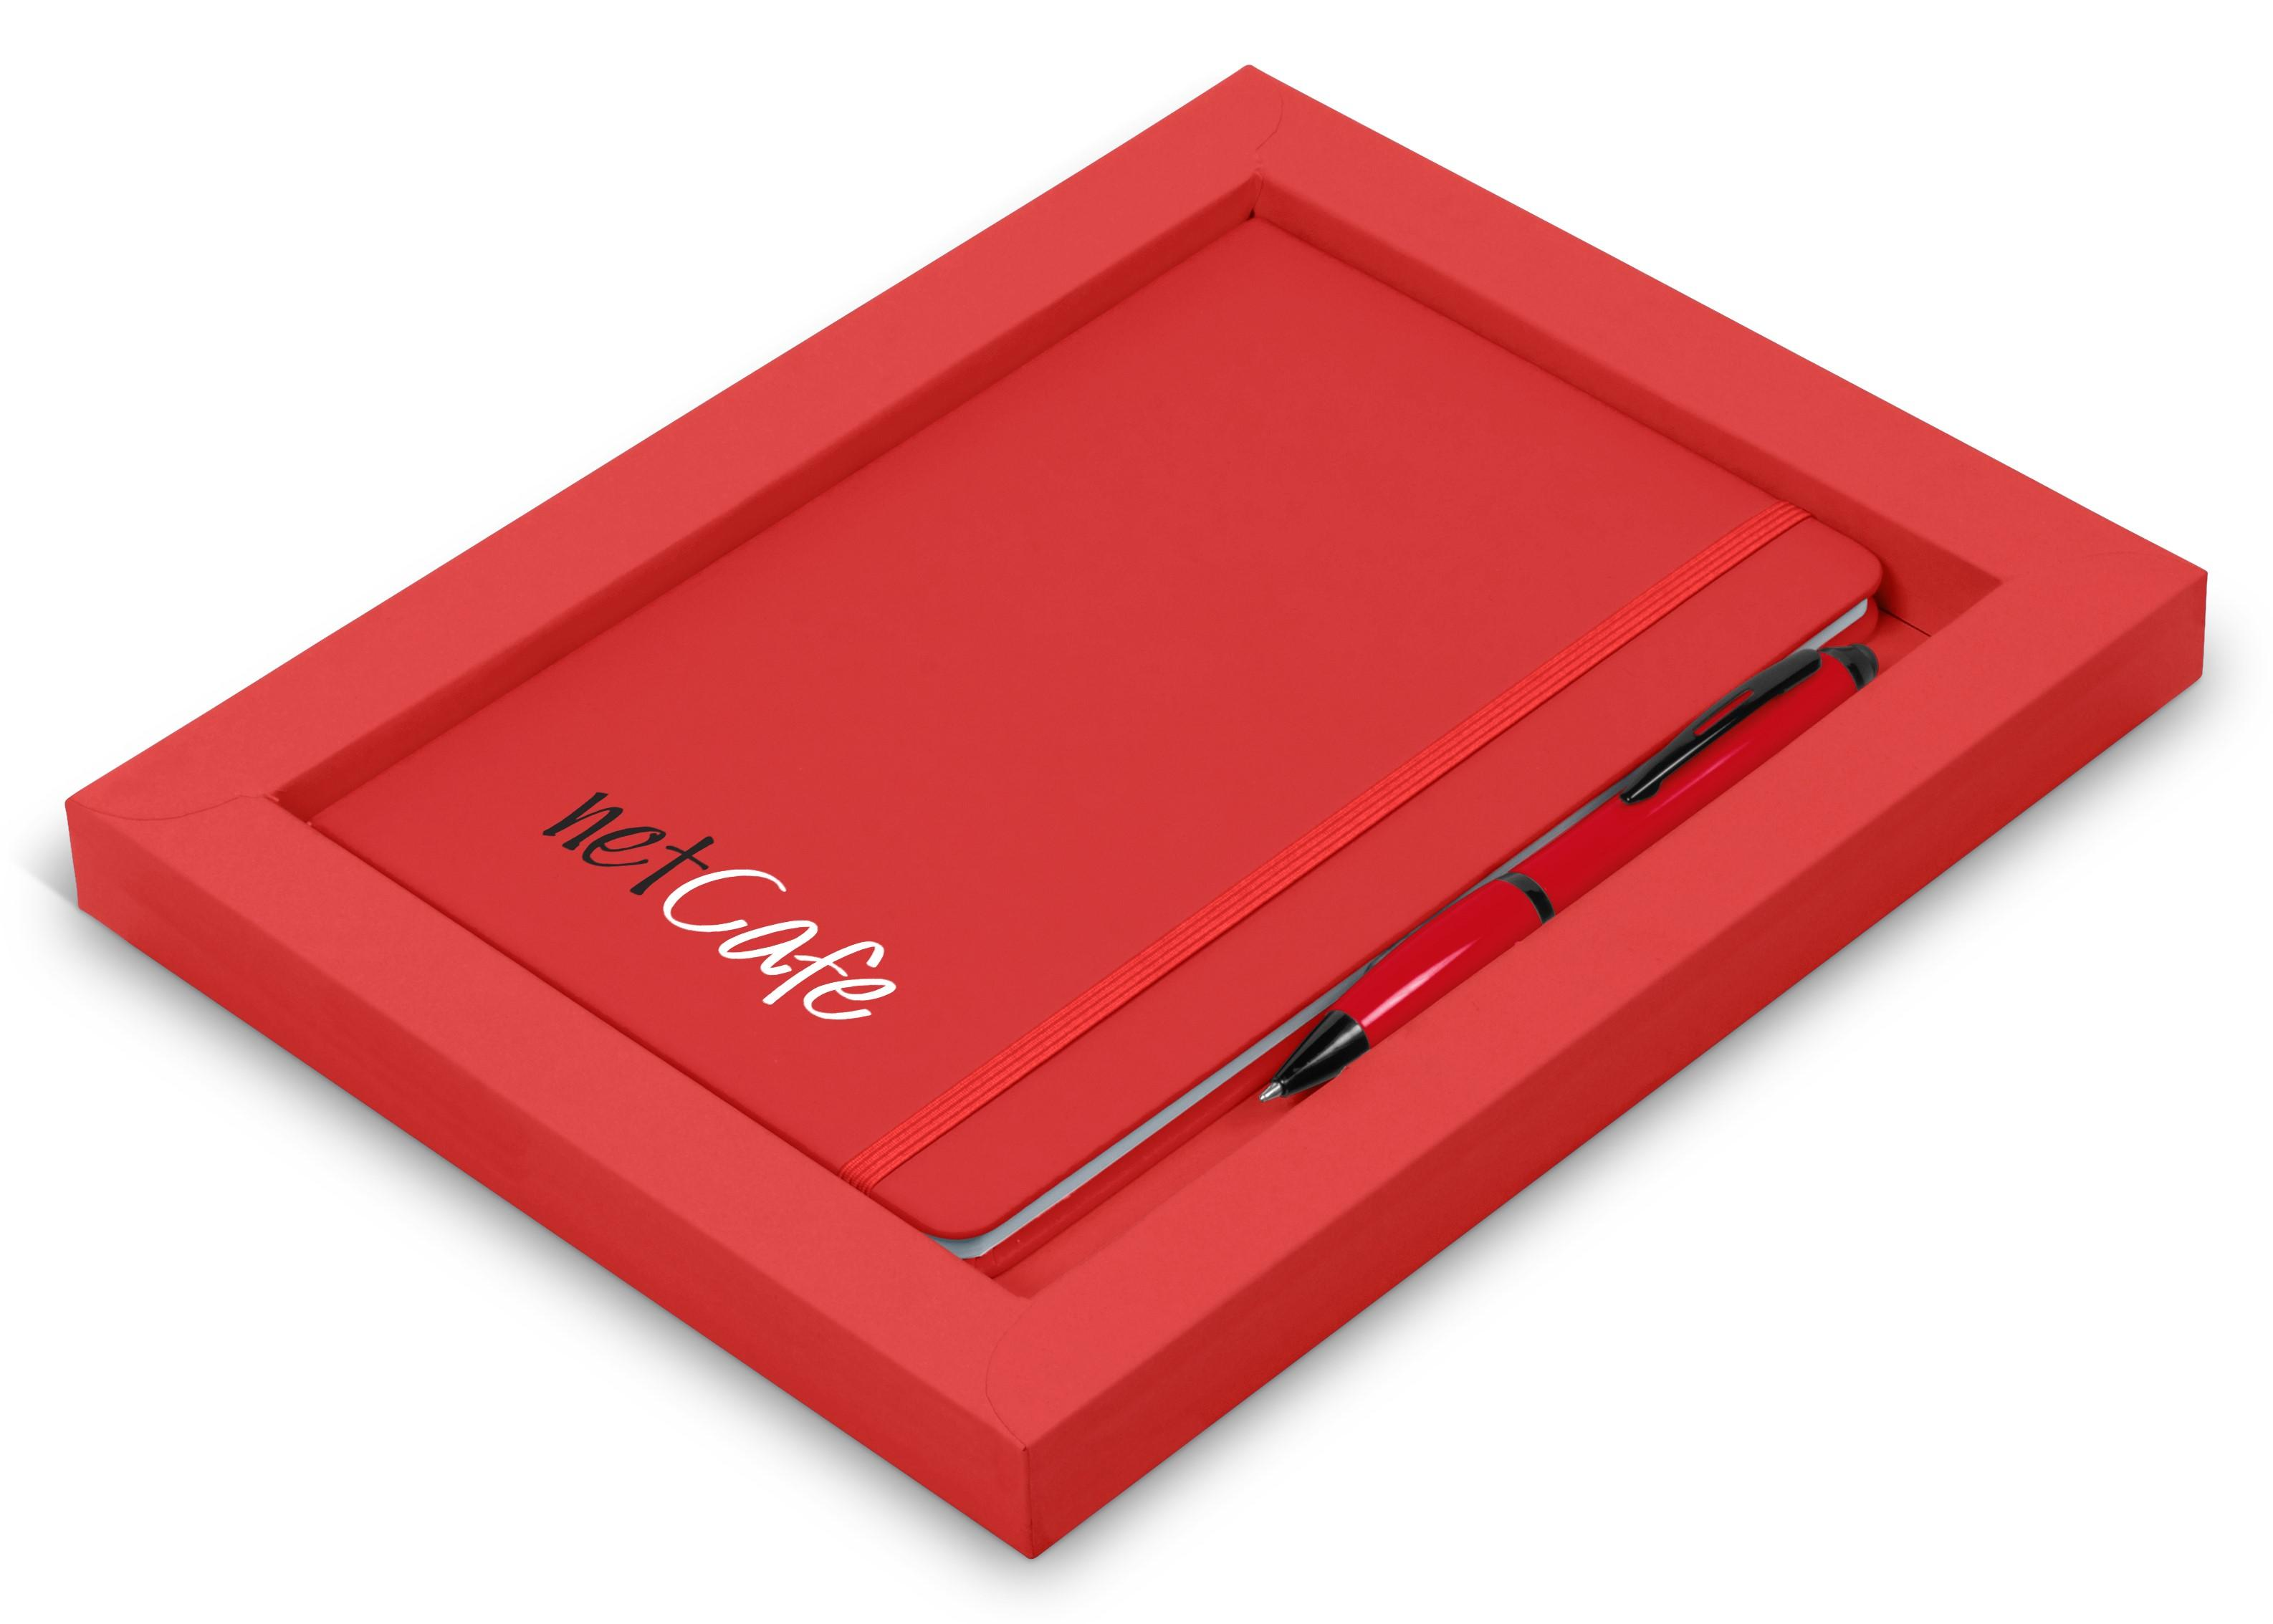 Omega Notebook Gift Set - Red Only